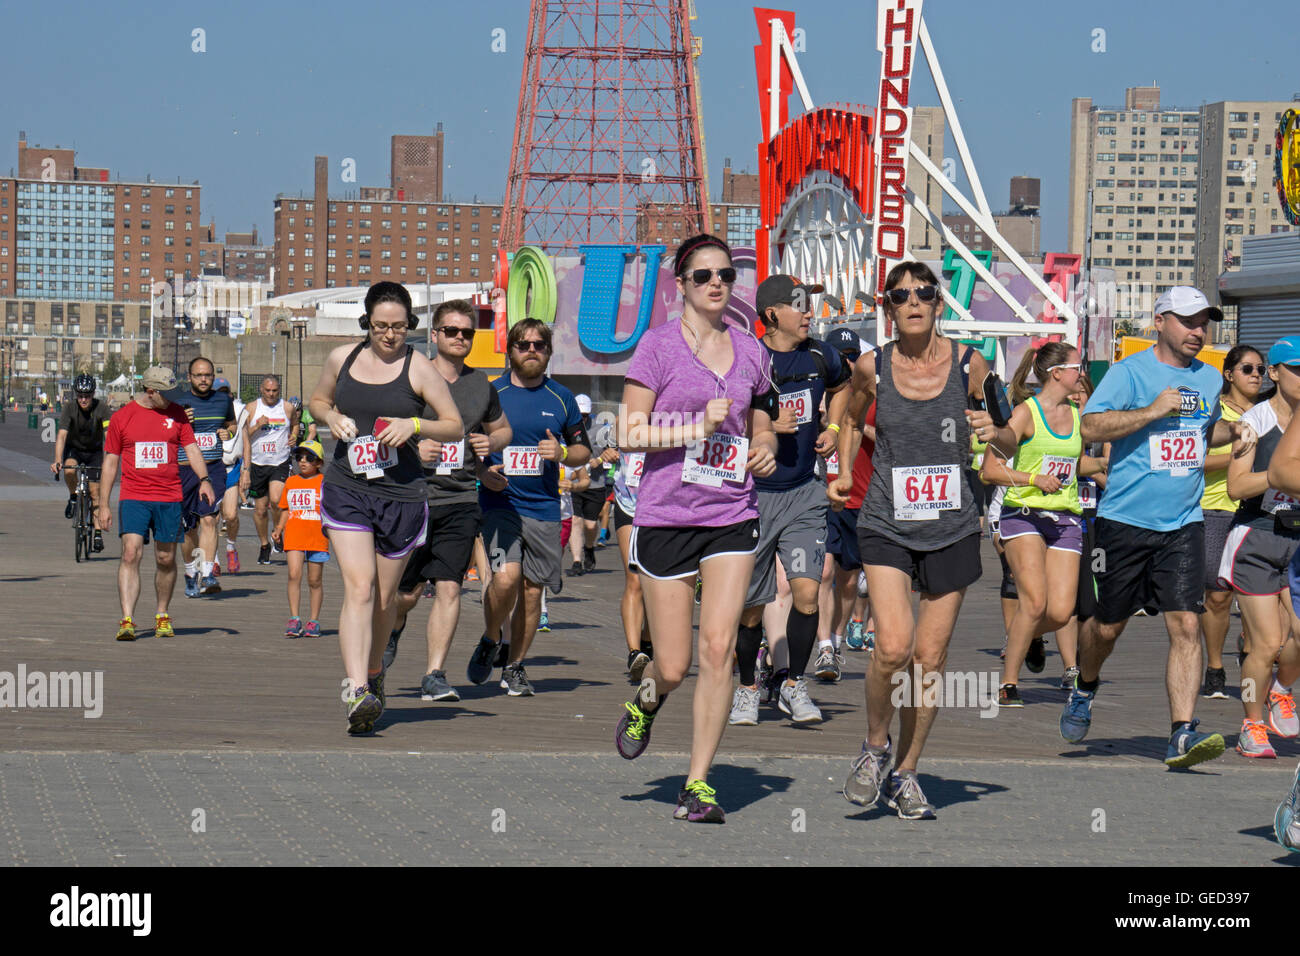 Men and women woman runners & walkers participate in the Brooklyn Cyclones 5k race in Coney Island, Brooklyn, - Stock Image